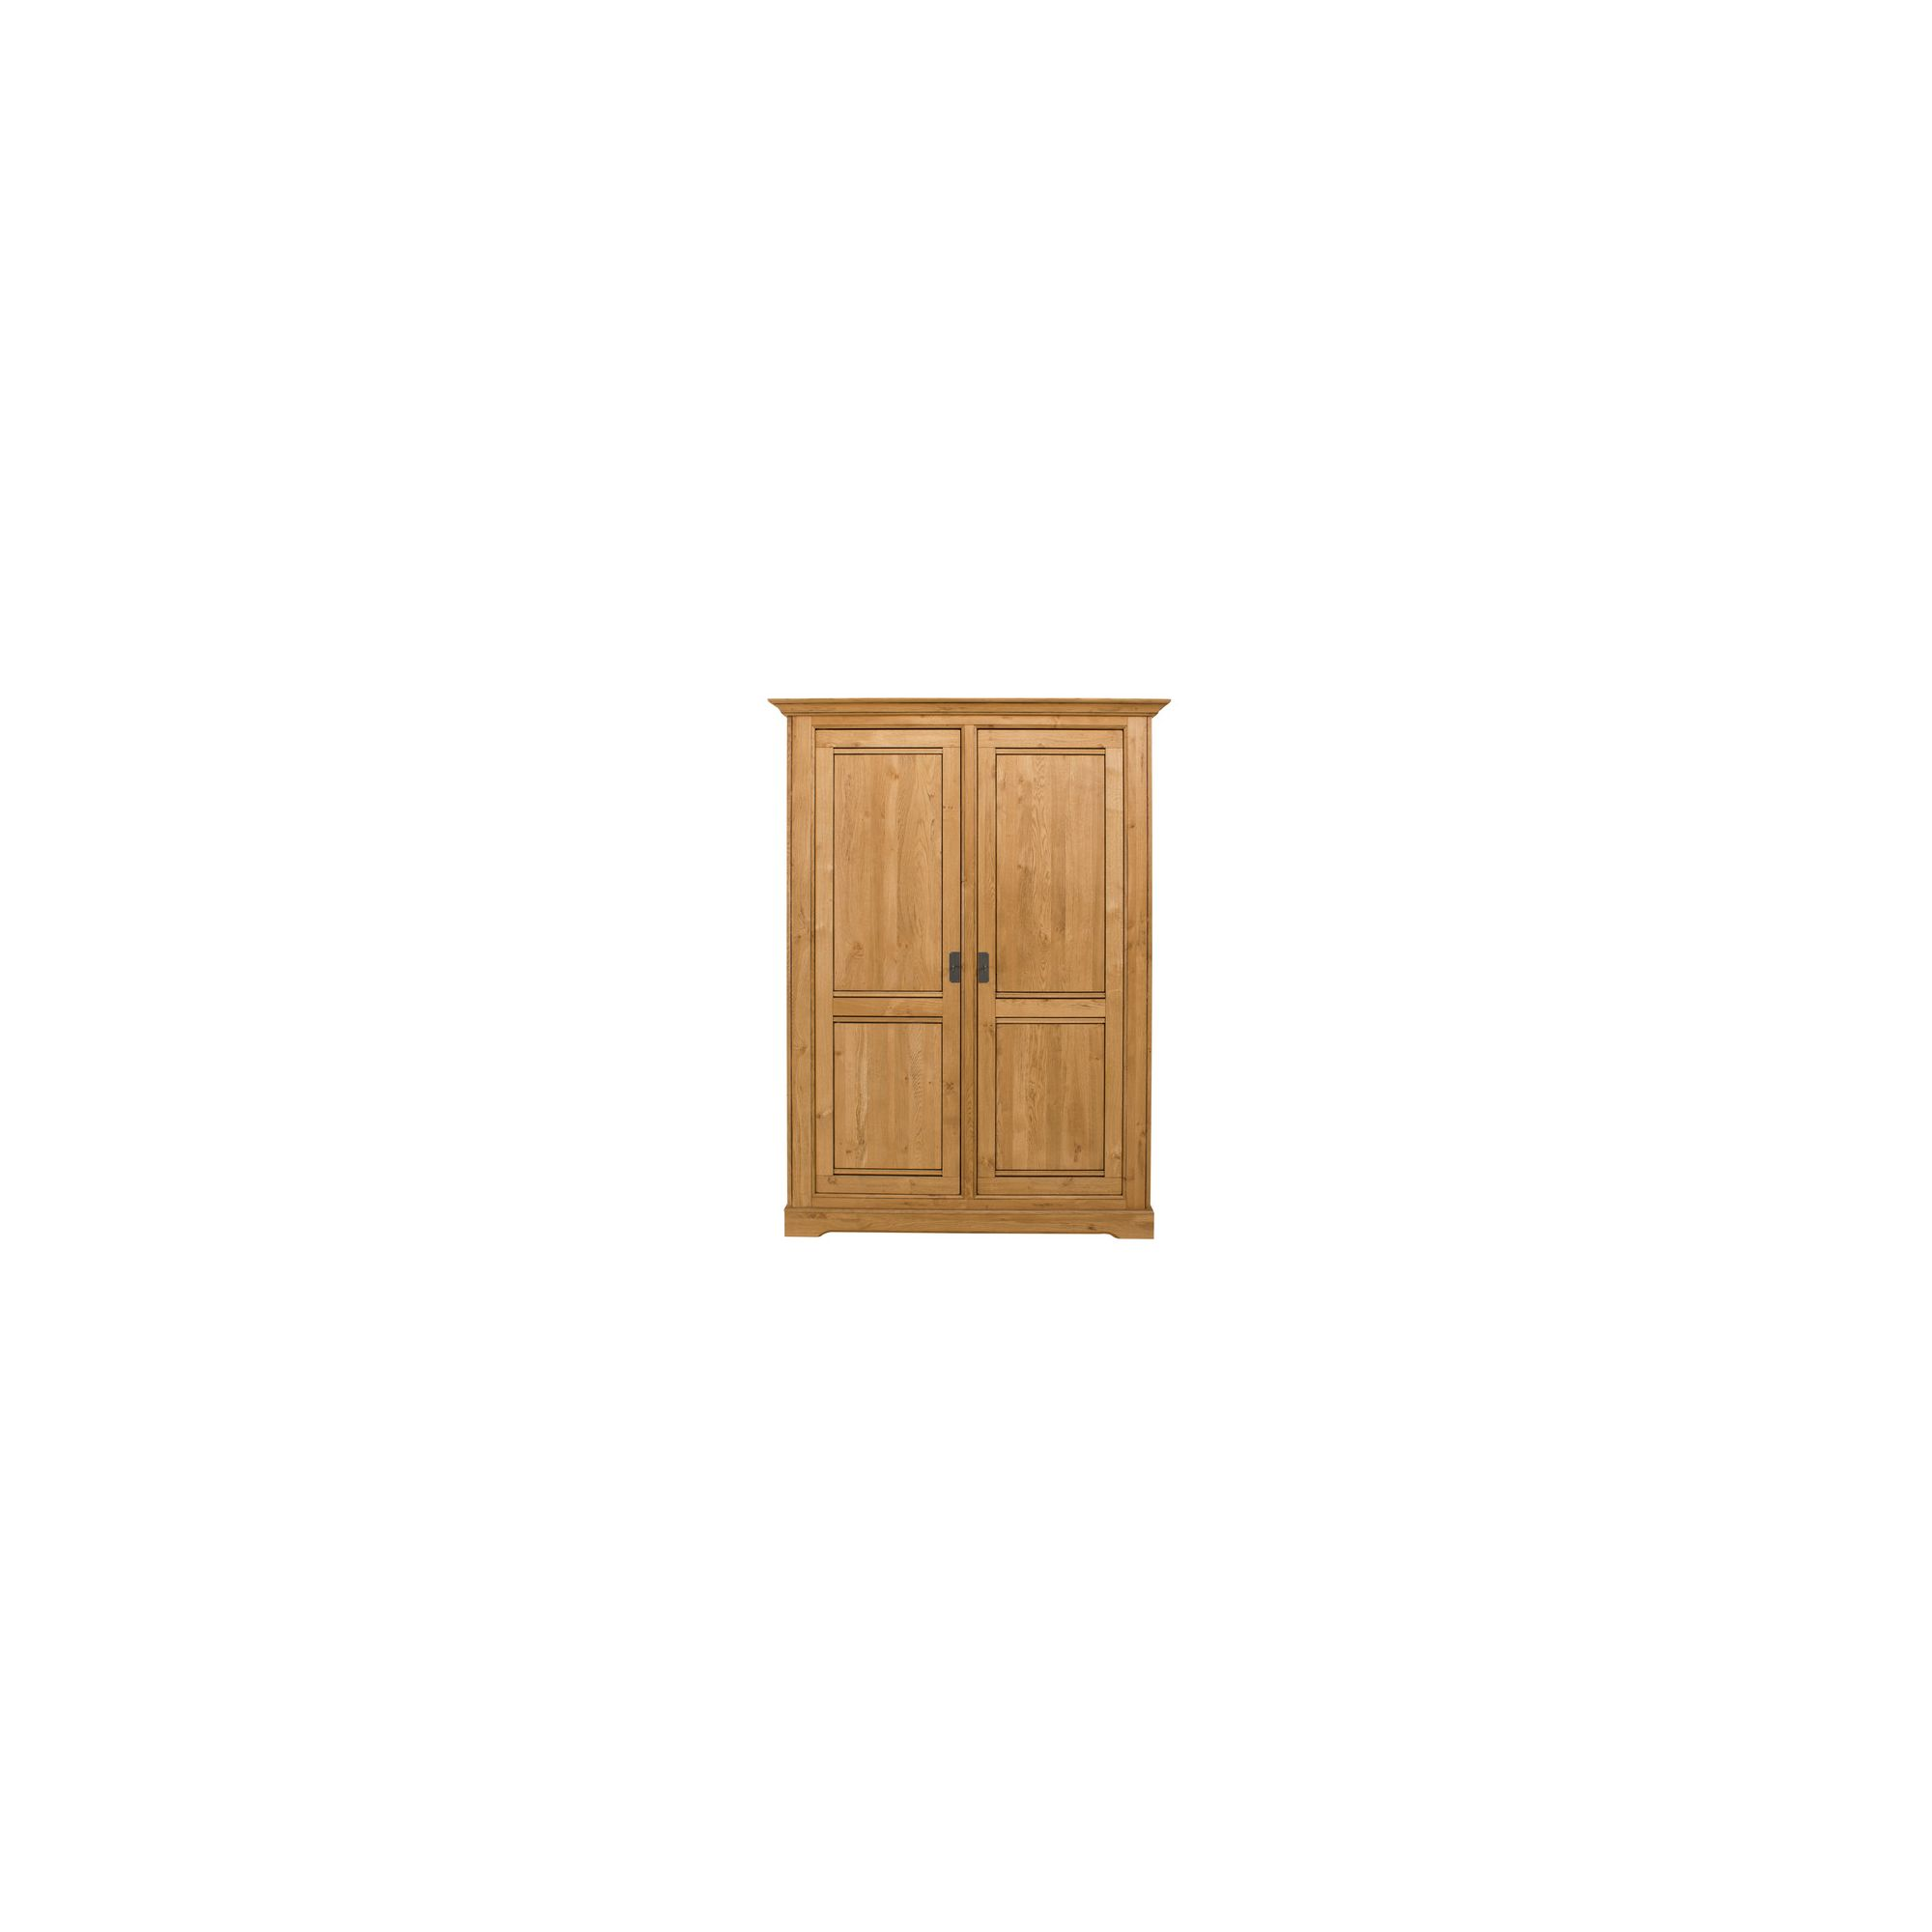 Parisot Artisane 2 Door Wardrobe at Tesco Direct